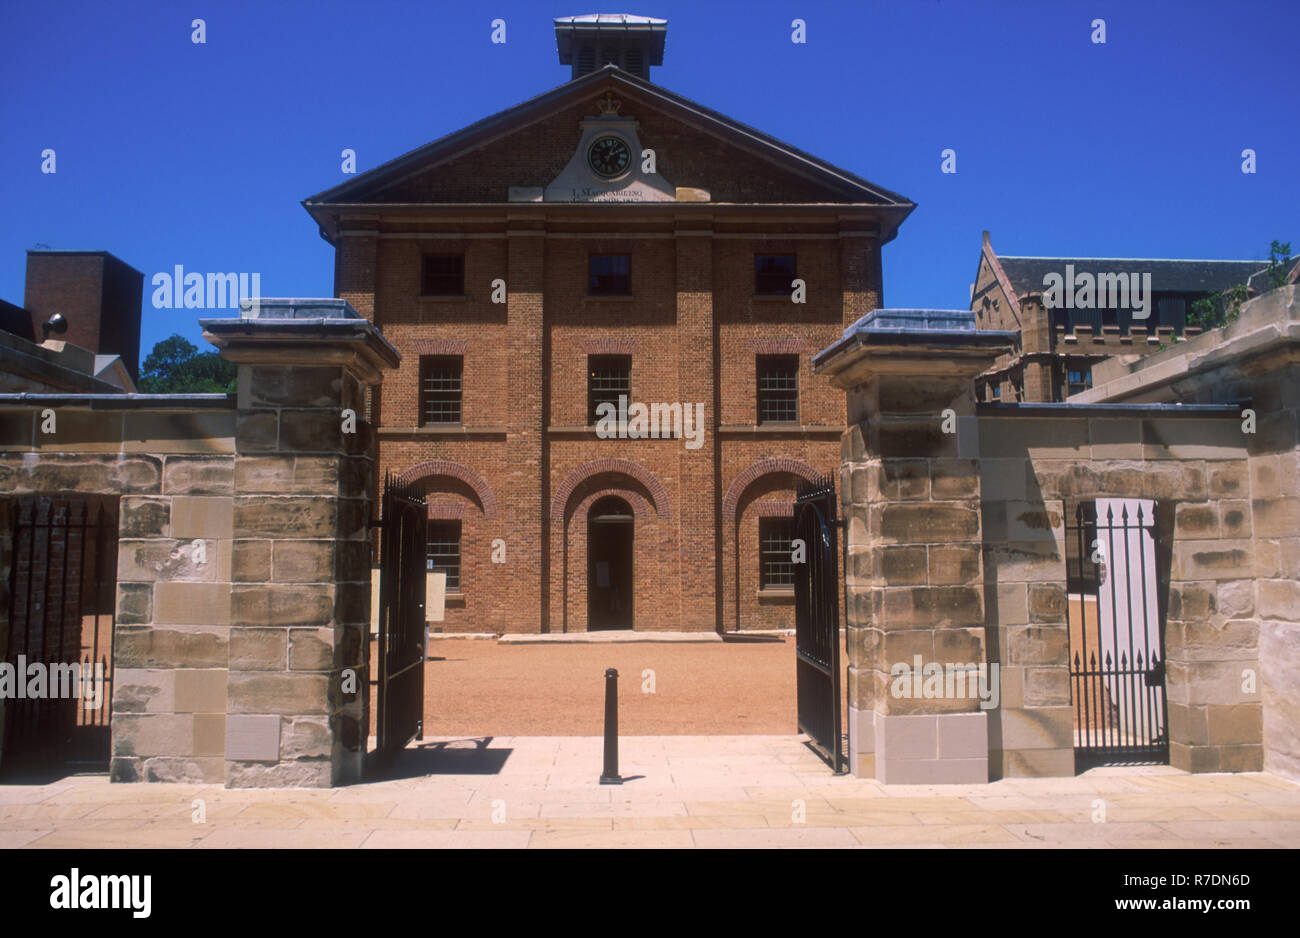 VIEW THROUGH MAIN GATES TO HYDE PARK BARRACKS, MACQUARIE STREET, SYDNEY, NEW SOUTH WALES, AUSTRALIA. THE BARRACKS ONCE HOUSED CONVICTS. - Stock Image